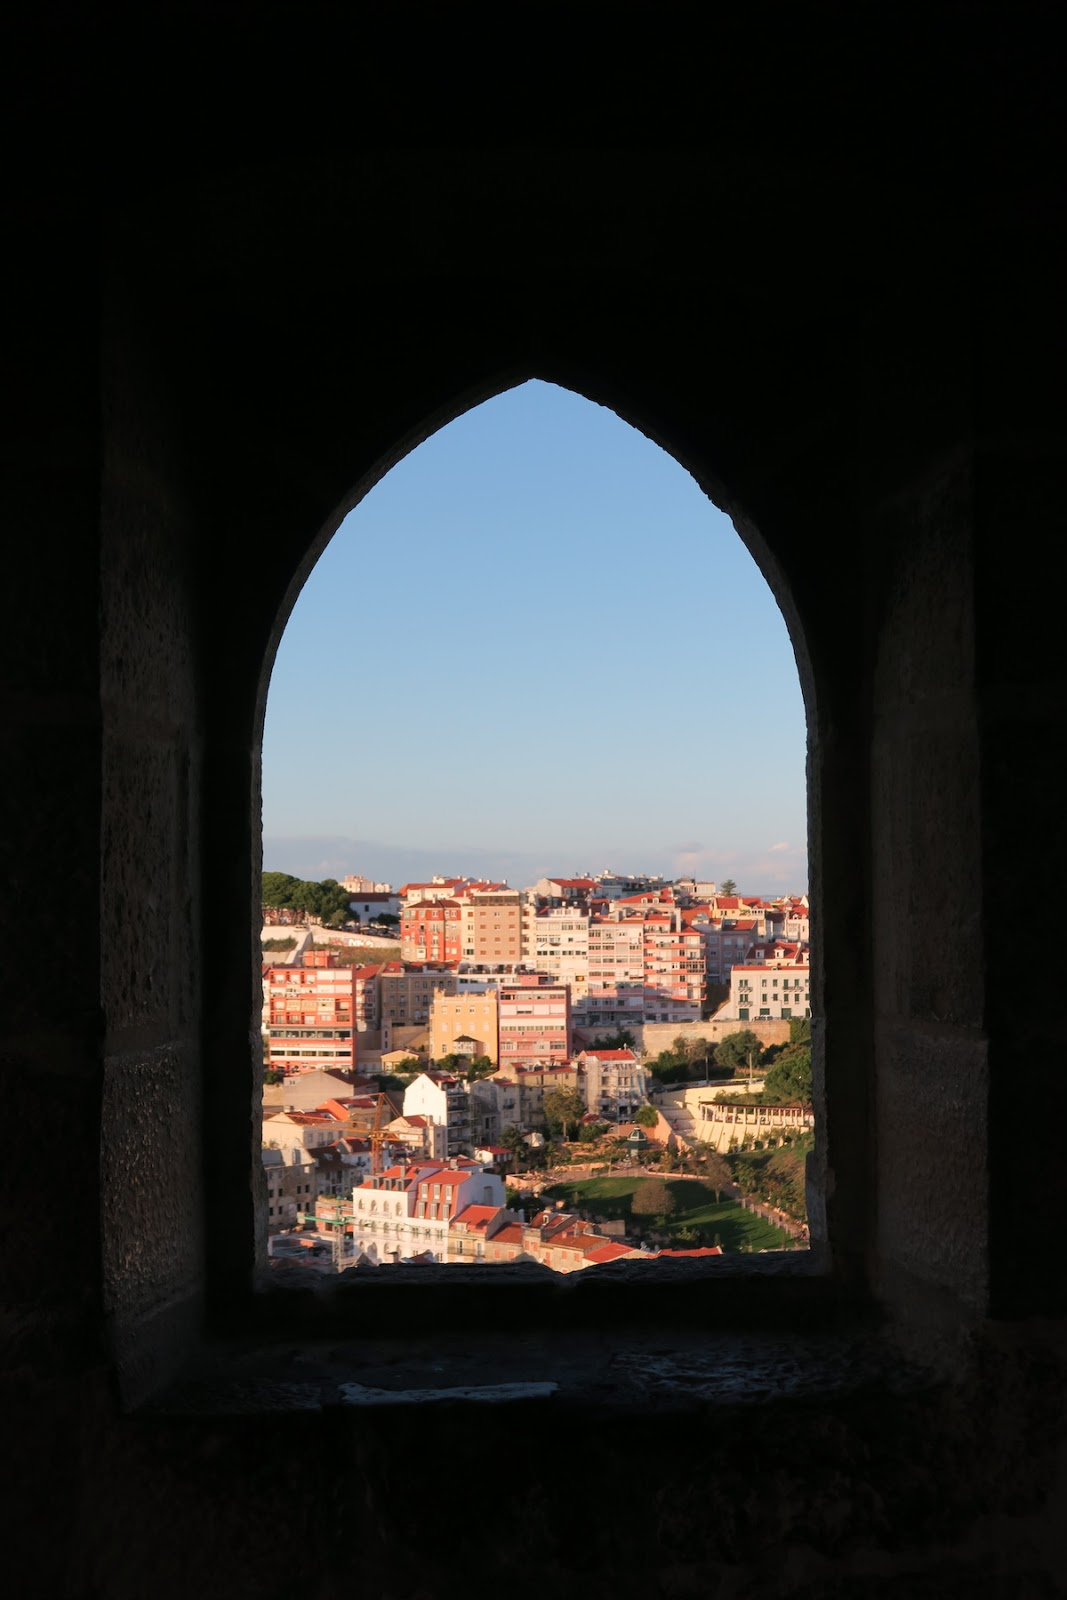 This is a shot from the inside of theSão Jorge Castle and shows the incredible views outside the open window.